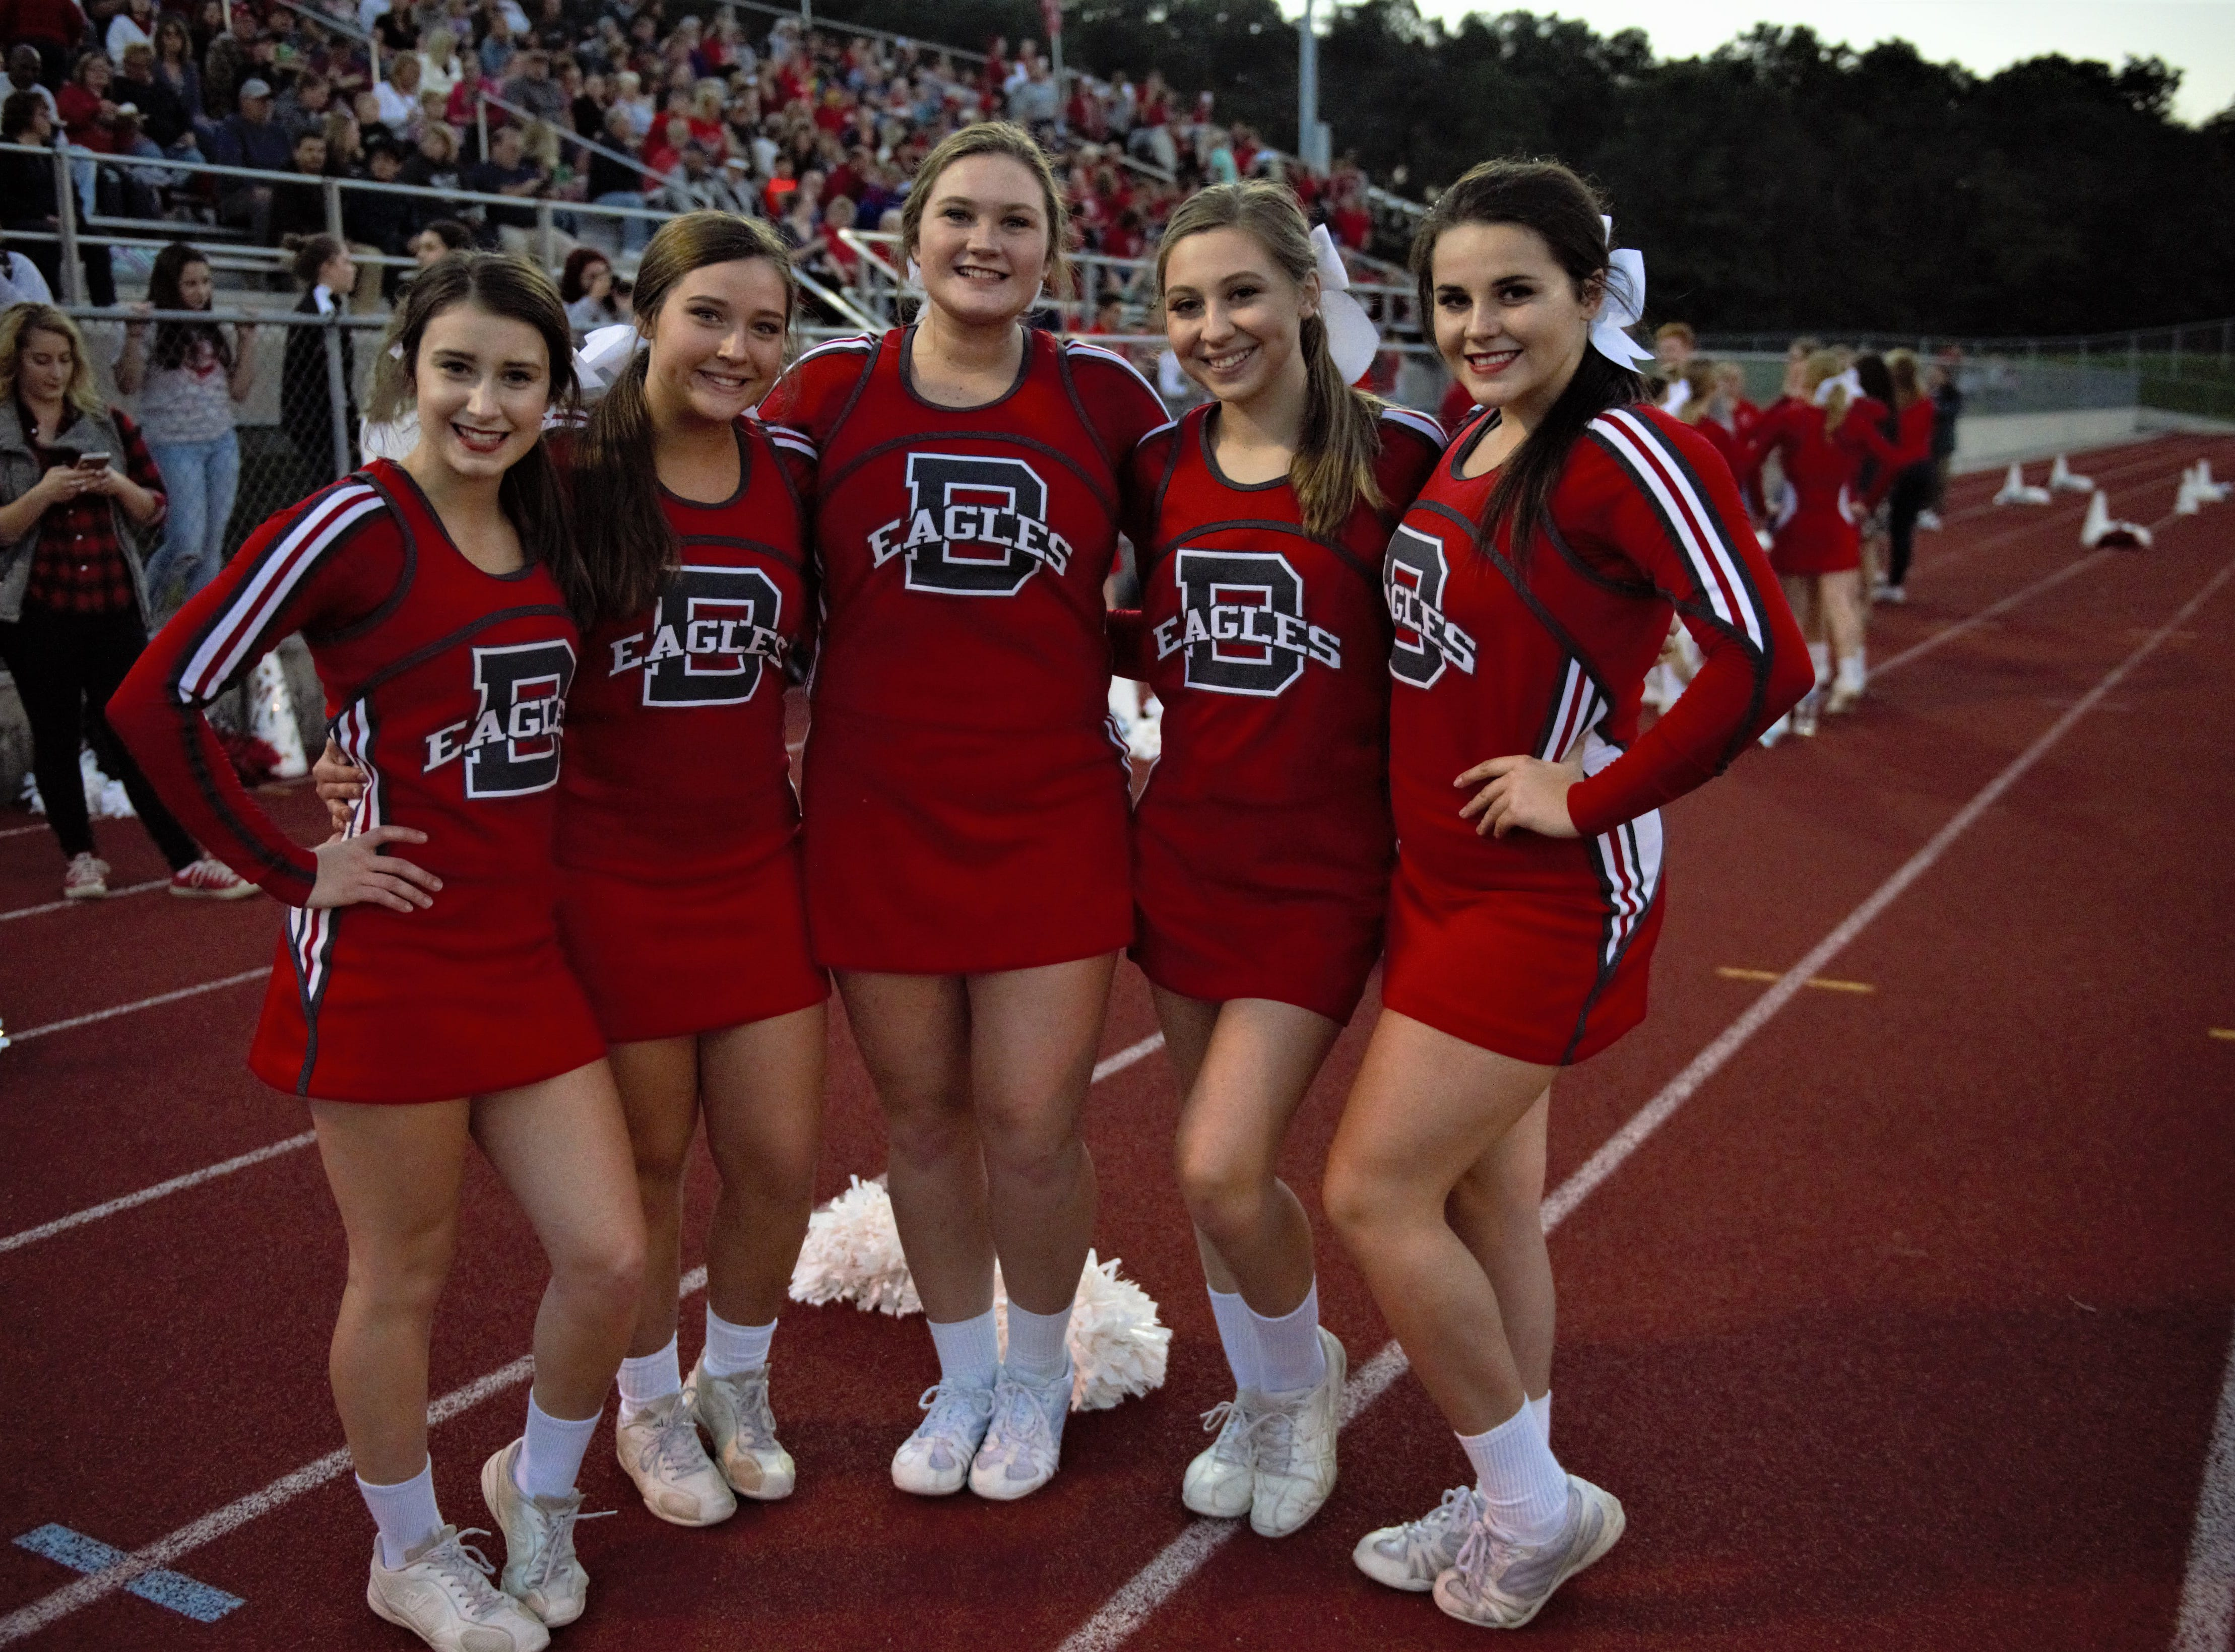 Bermudian Springs cheerleaders at the home game against Delone Catholic on Oct. 5.